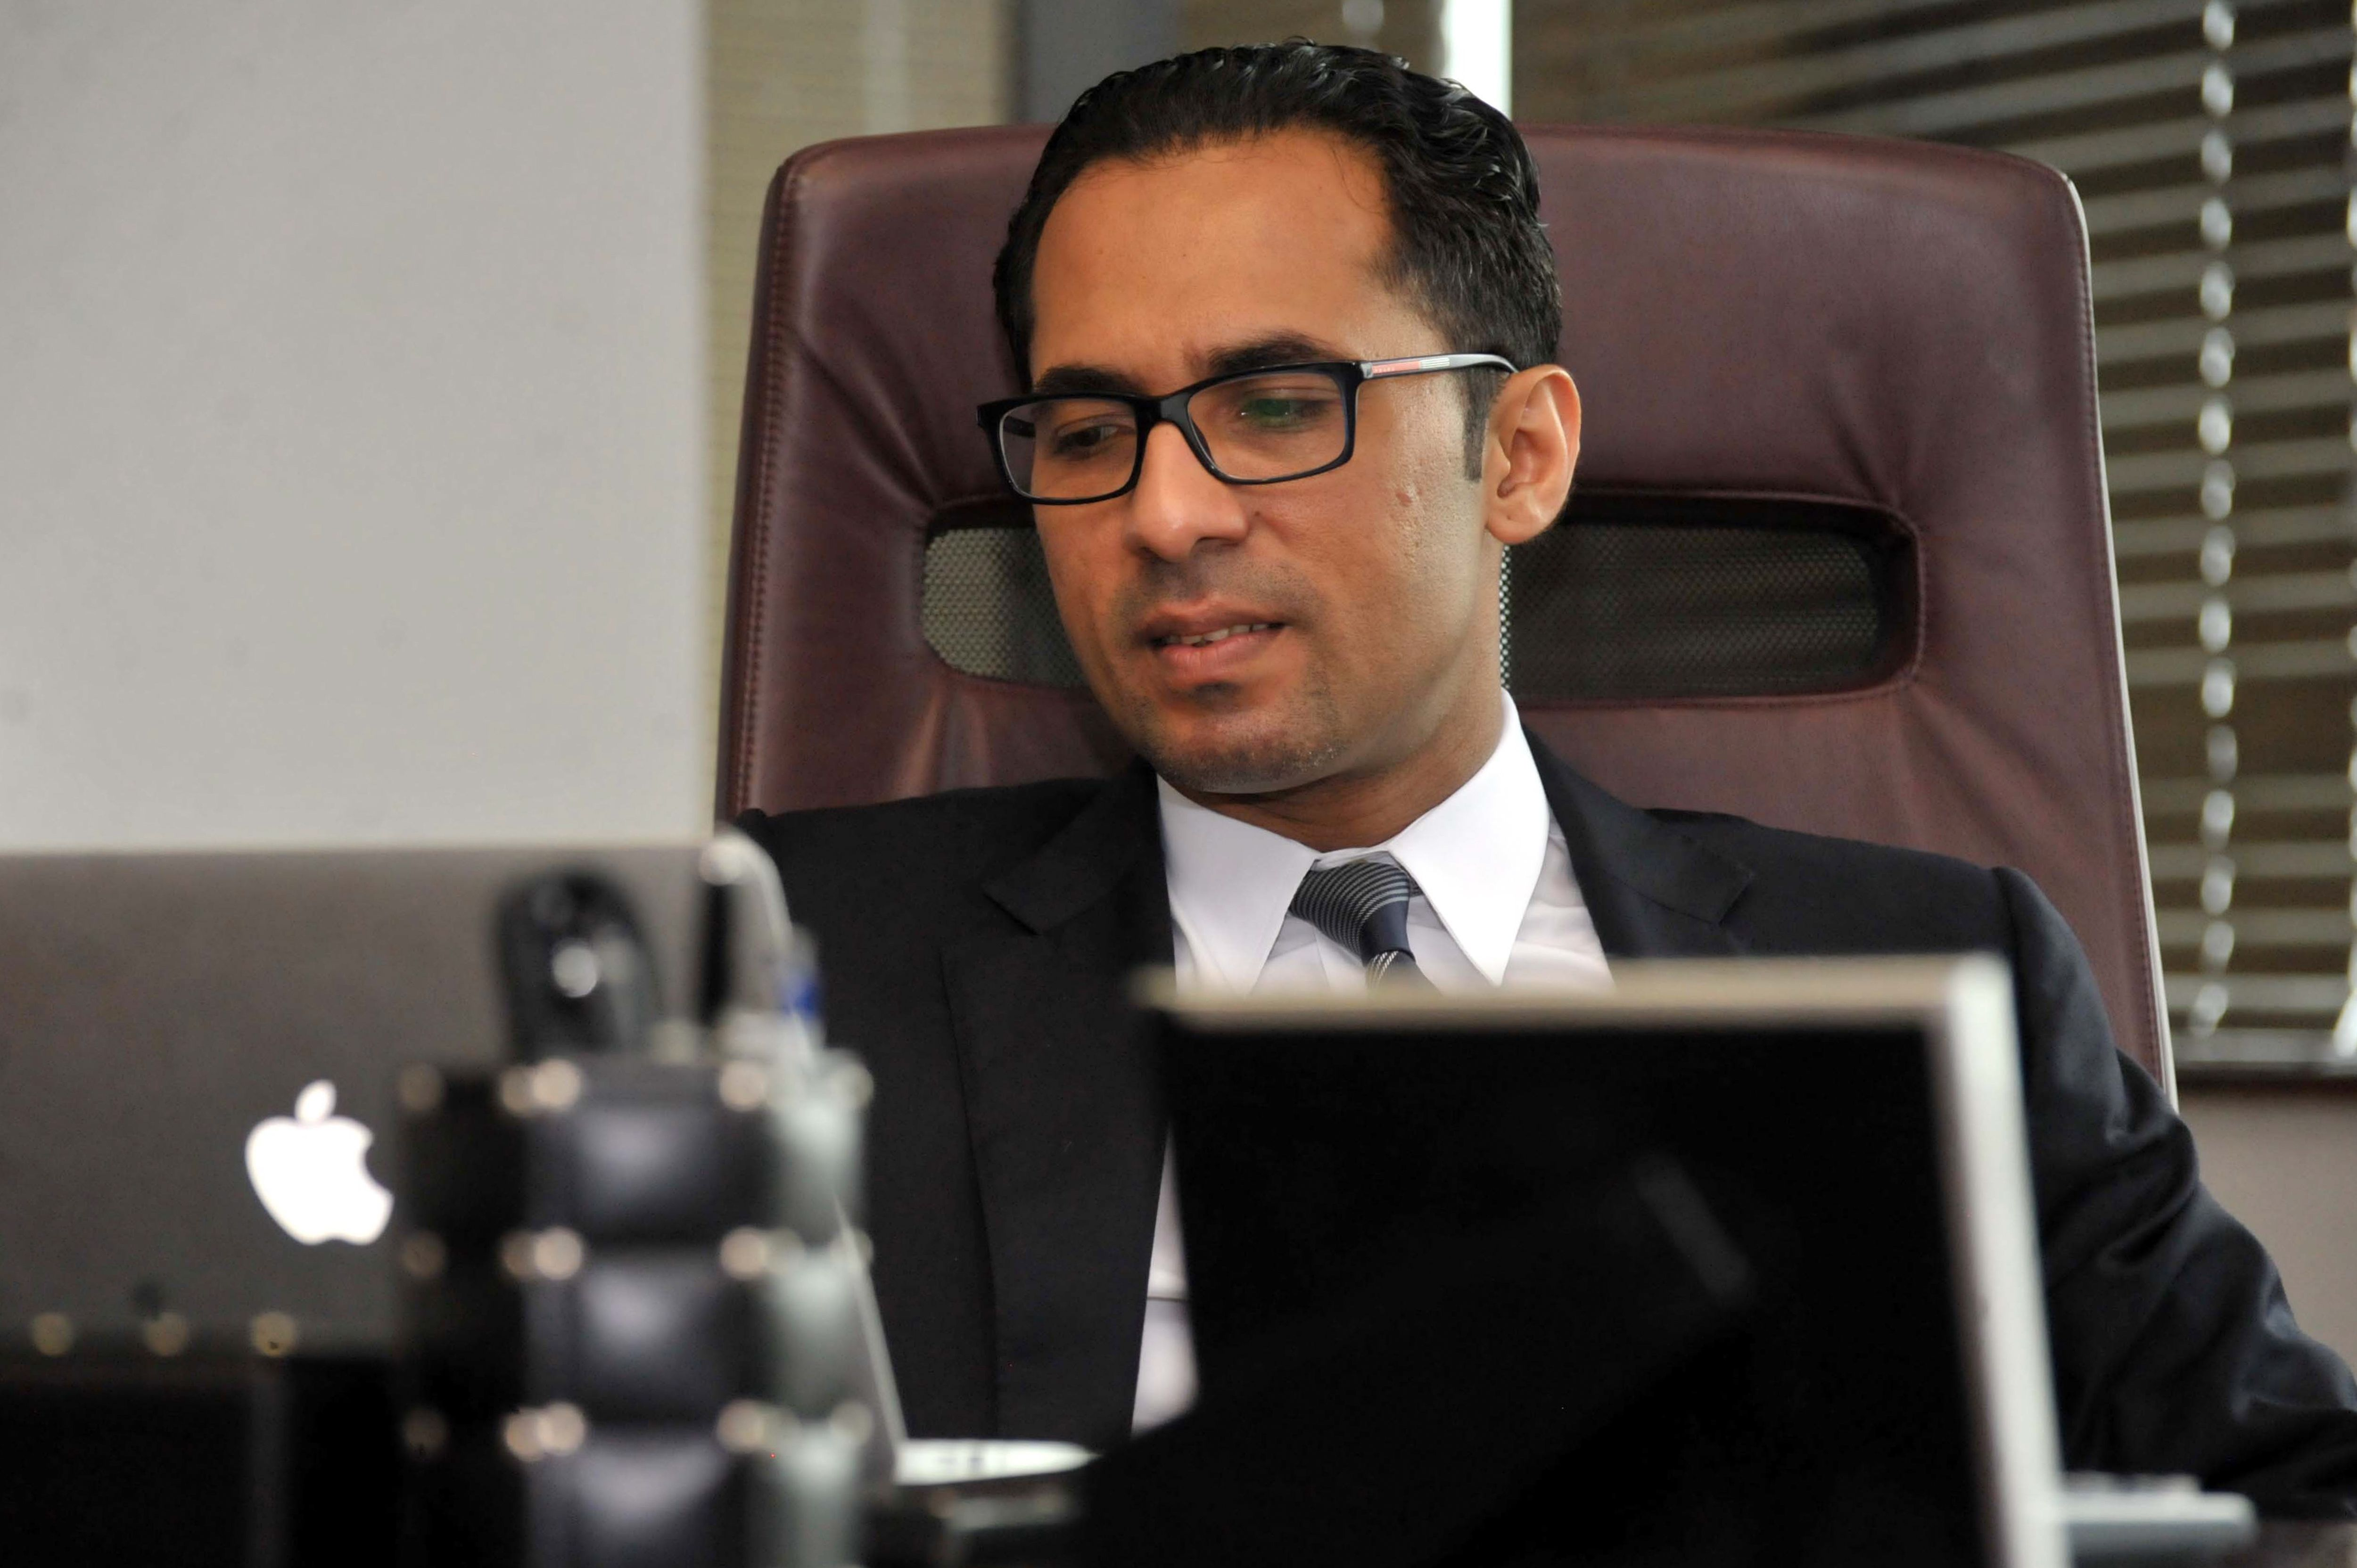 A file picture taken on April 23, 2015, shows Tanzanian businessman Mohammed Dewji at his office in Dar es Salaam. - Africa's youngest billionaire was kidnapped on October 11, 2018, by gunmen in Tanzania's economic capital Dar es Salaam, officials said. The Police are unsure if Dewji is still alive.